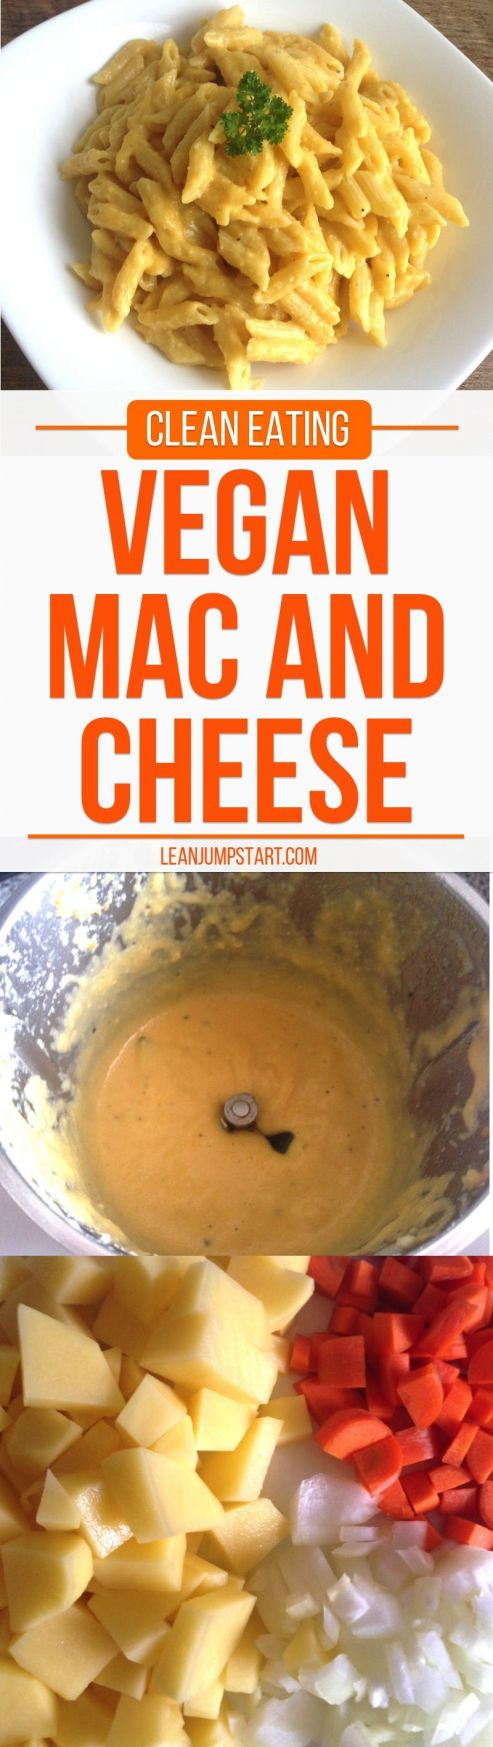 This quick homemade mac and cheese recipe - vegan style is ...